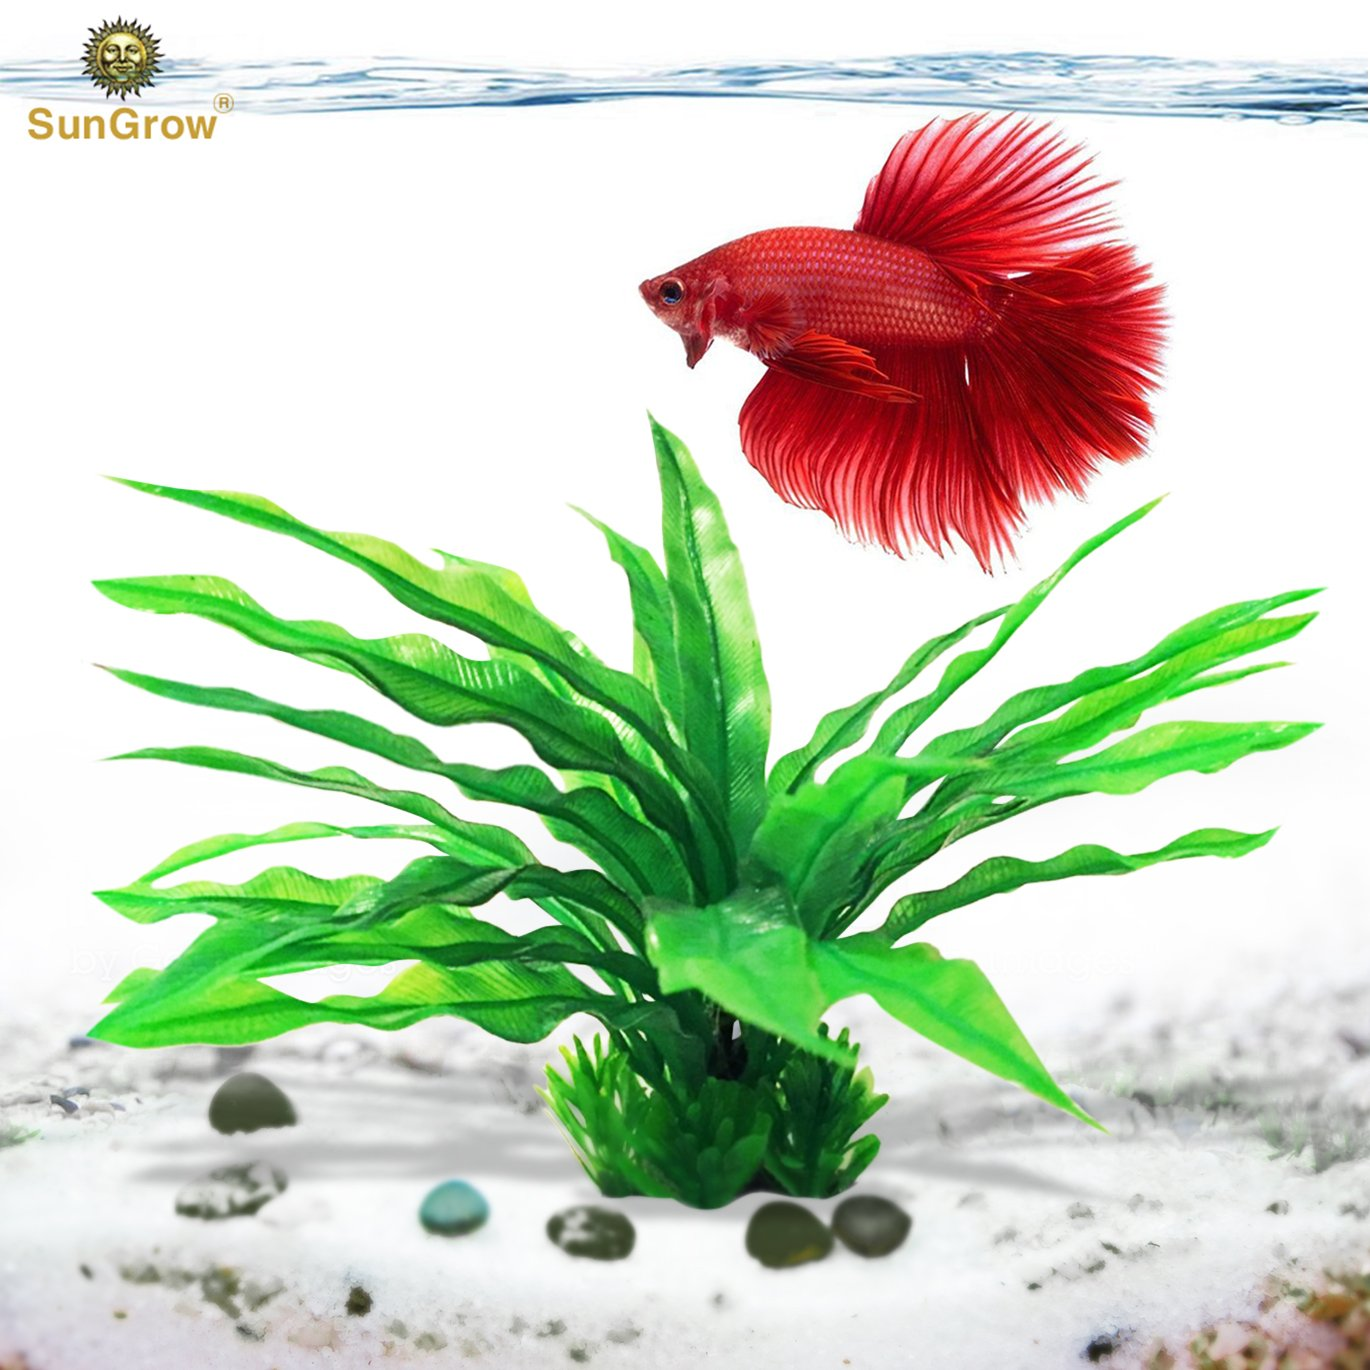 SunGrow Long Leaf Java Fern - Plastic Artificial Plant to Enhance Your Aquascape - Fish Tank Aquarium Decor - Looks Realistic, Beautiful Green Leaves - No Maintenance Required - Ready to Install